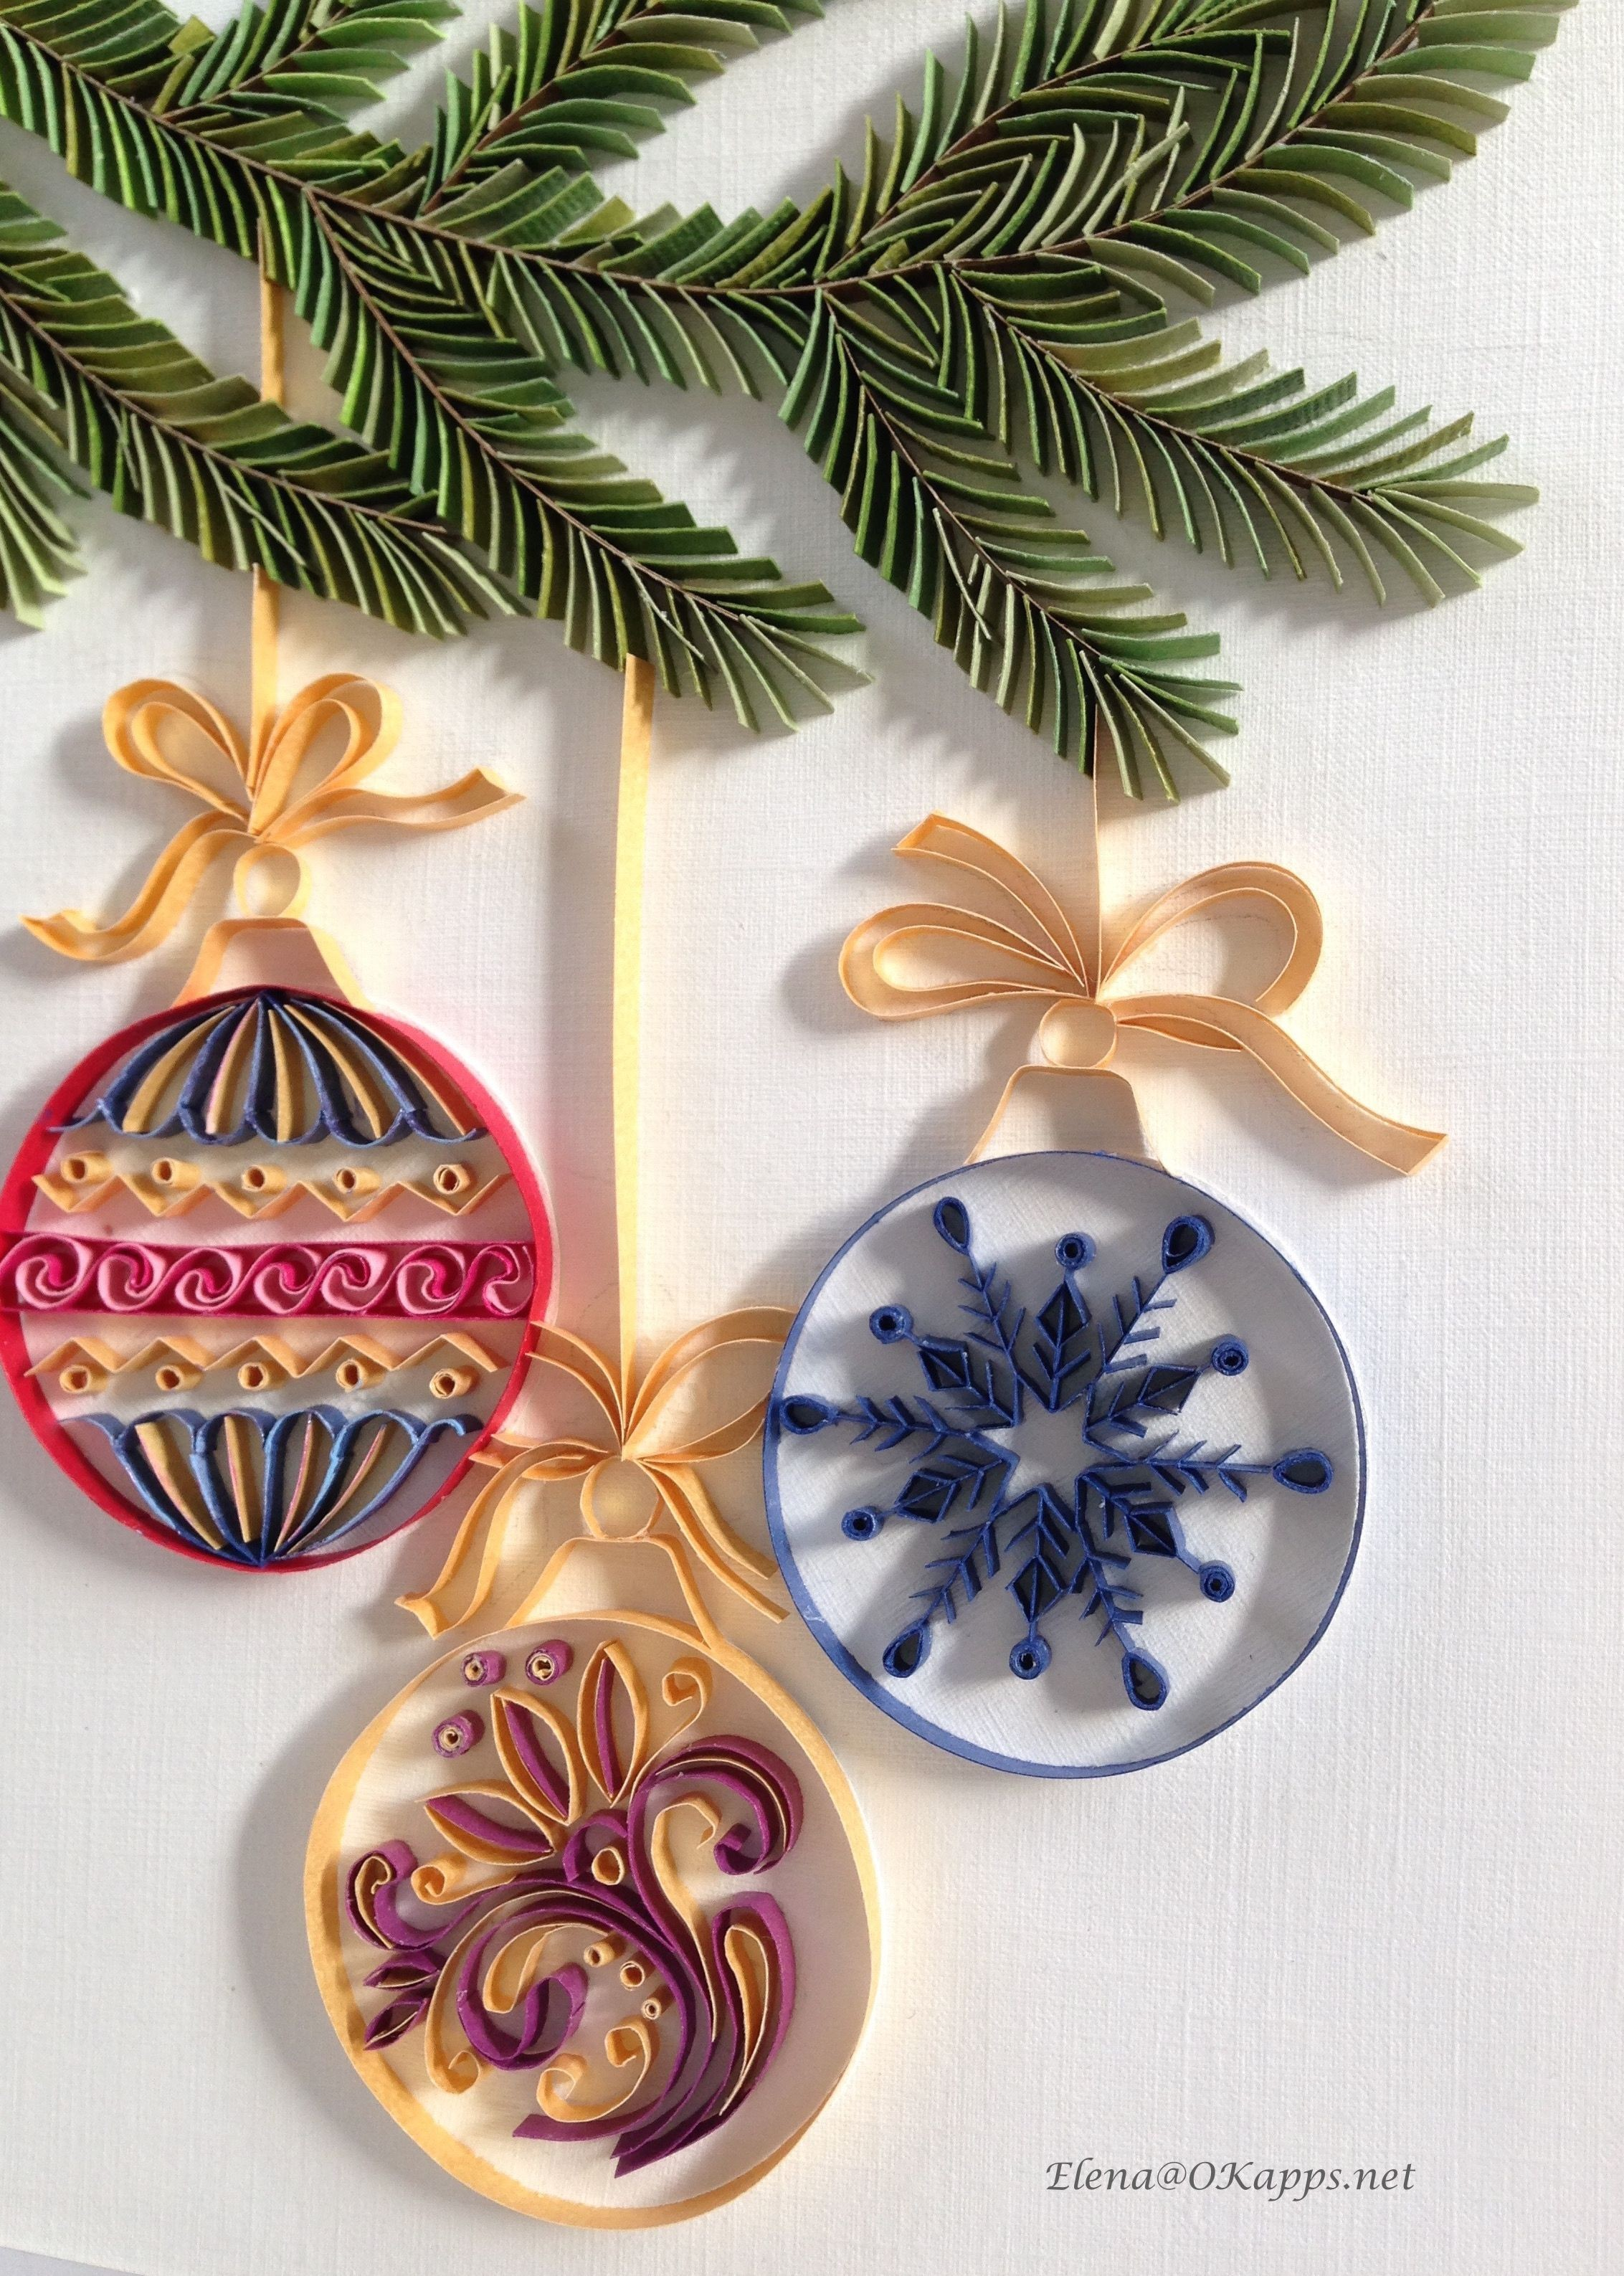 Papercraft Christmas Tree Christmas Tree Quilling Gorgeous Quill Pinterest